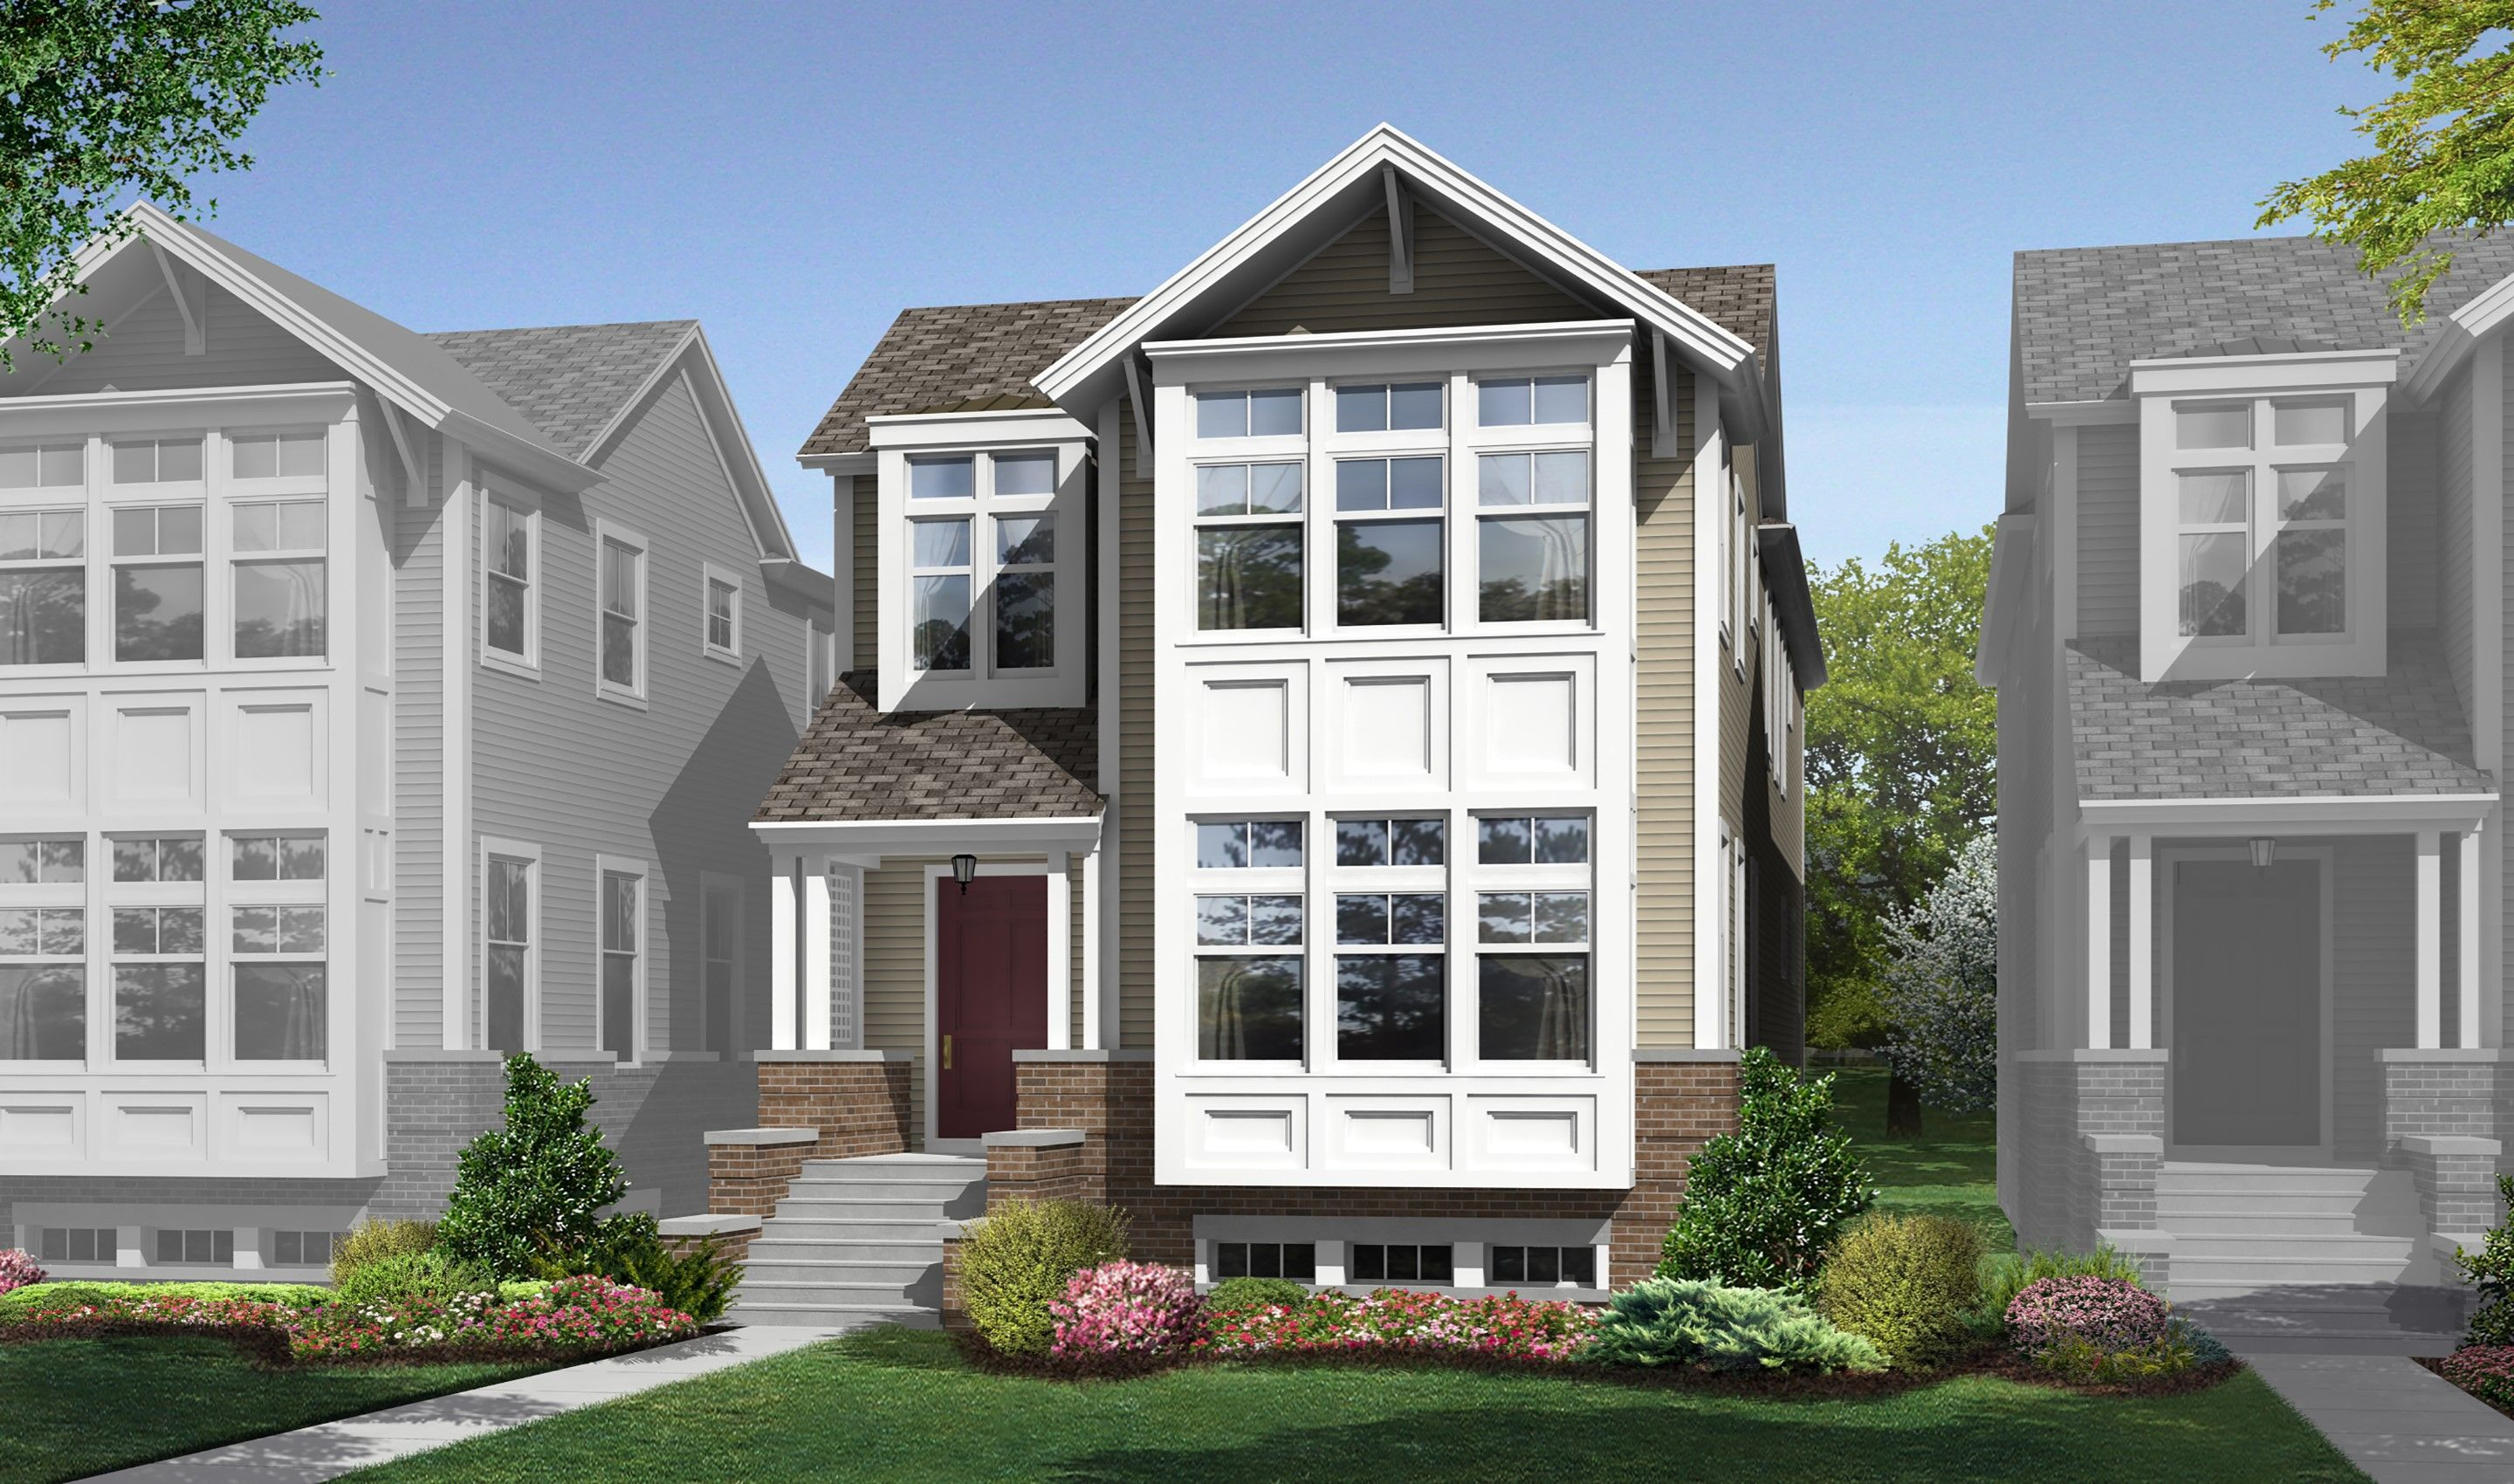 Chicago homes for sale homes for sale in chicago il for Houses for sell in chicago